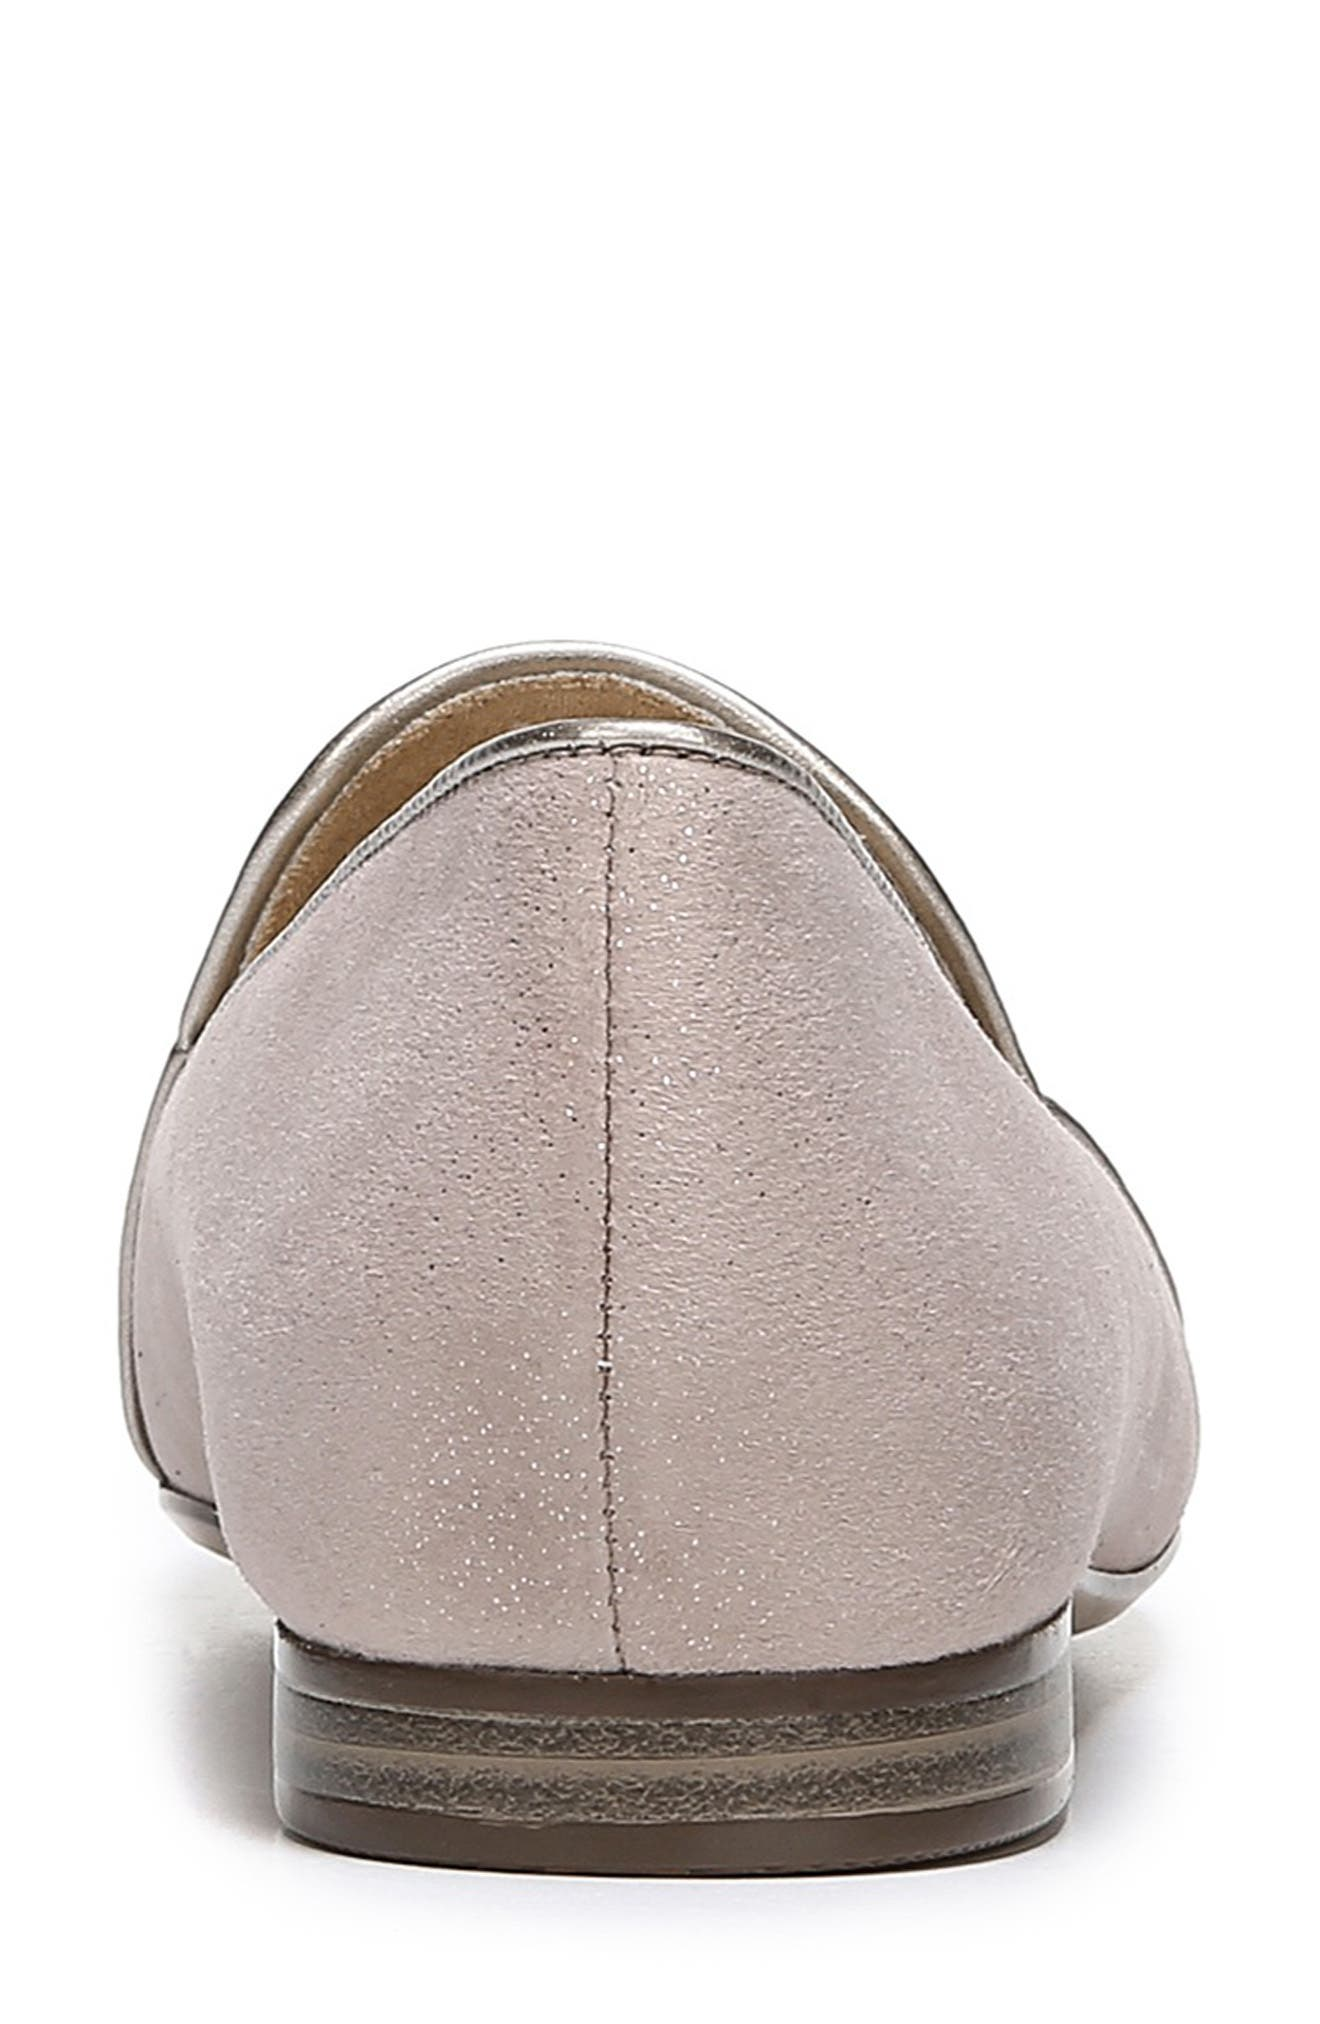 Emiline 2 Loafer,                             Alternate thumbnail 7, color,                             TAUPE GLITTER DUST SUEDE